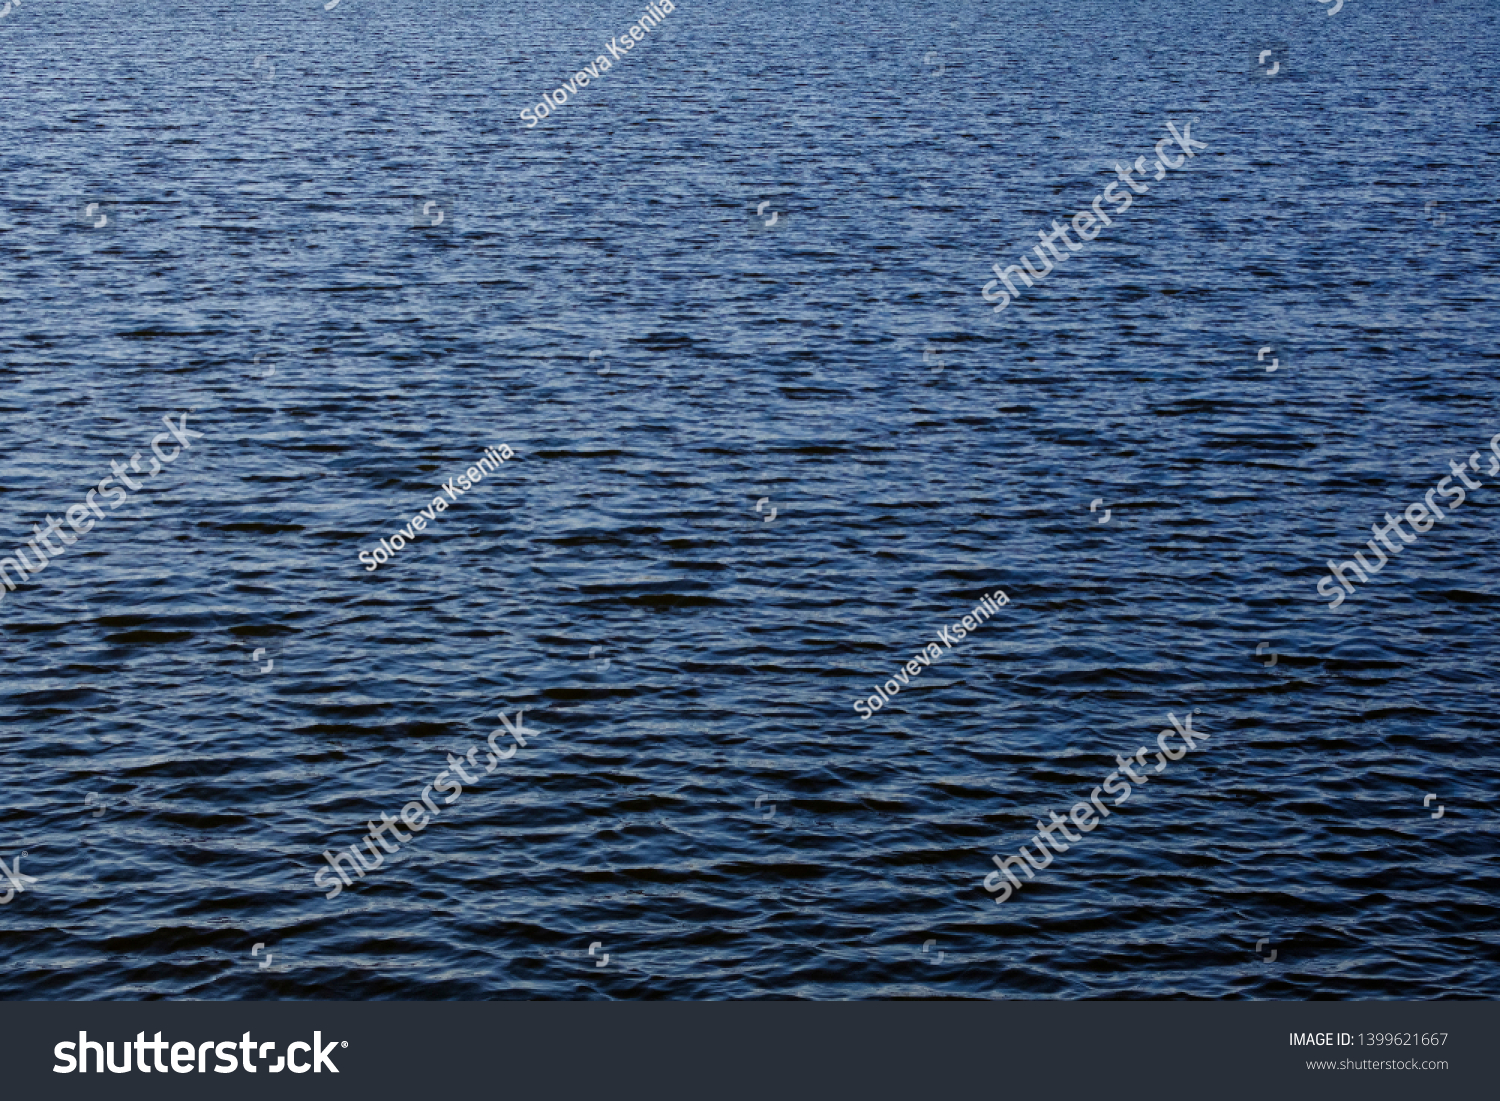 Light playing on the sea surface. Water surface. Sea surface. Water background. Blue water surface. Abstract blue water  #1399621667